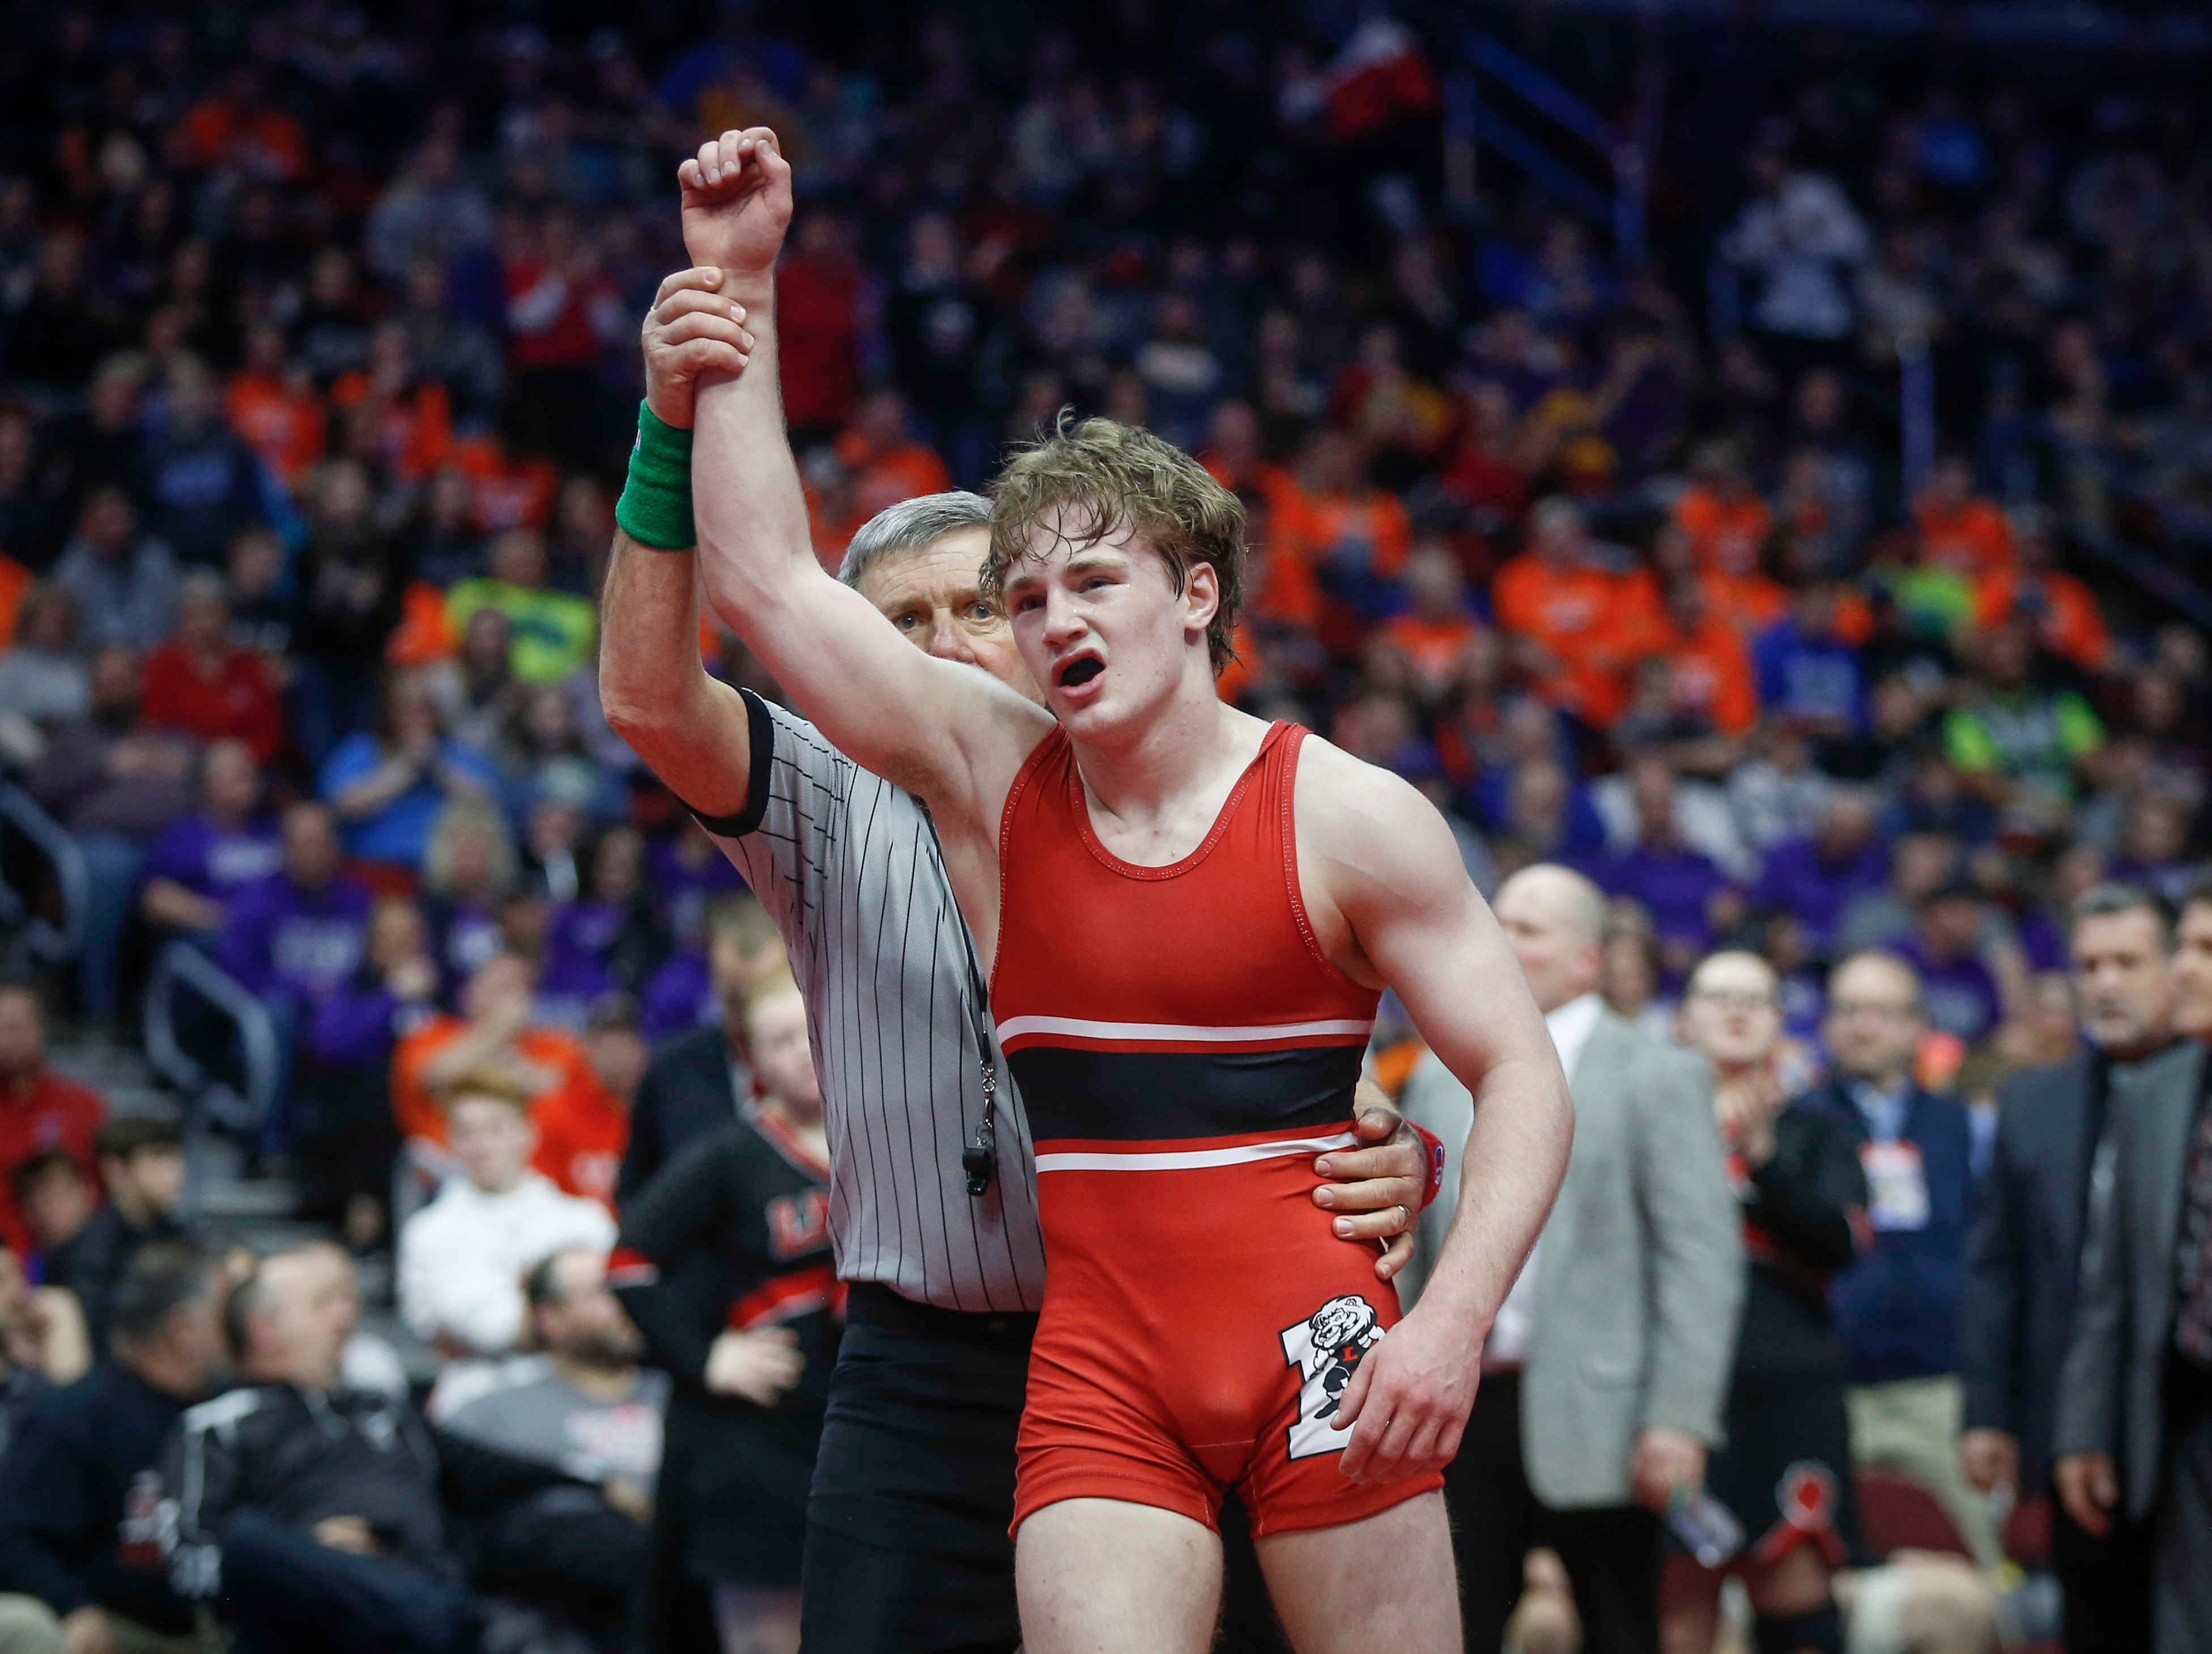 Lisbon junior Cael Happel celebrates after beating Underwood junior Logan James for a Class 1A state title win at 132 pounds during the state wrestling Class 1A championship on Saturday, Feb. 16, 2019, at Wells Fargo Arena in Des Moines.